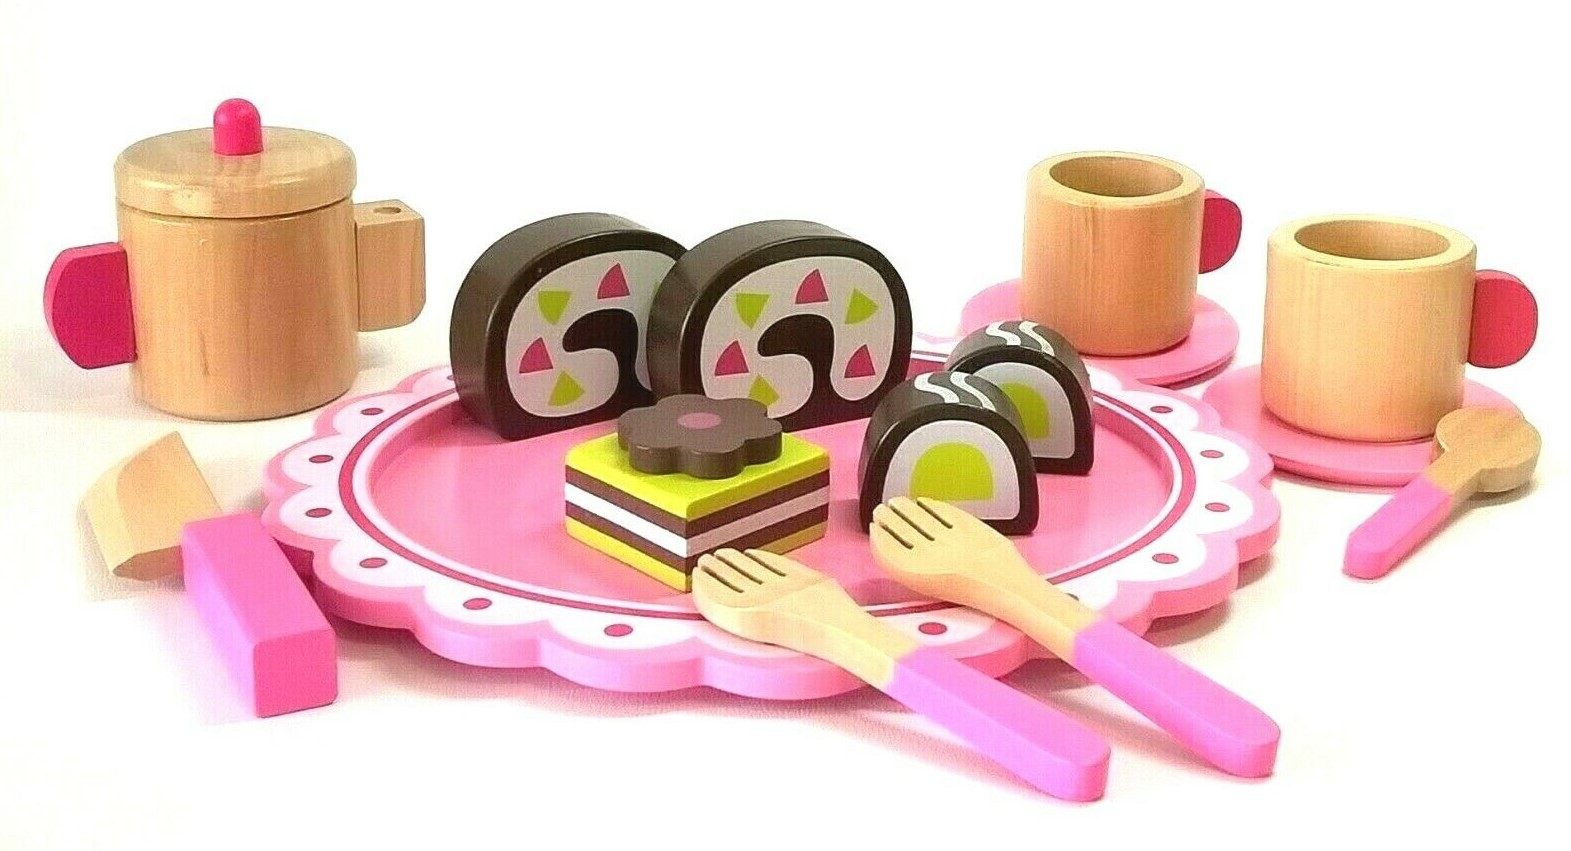 WOODEN TEA SET & CAKE PLAYSET - 15 Piece Toy by Tooky Toys - Ages 3+